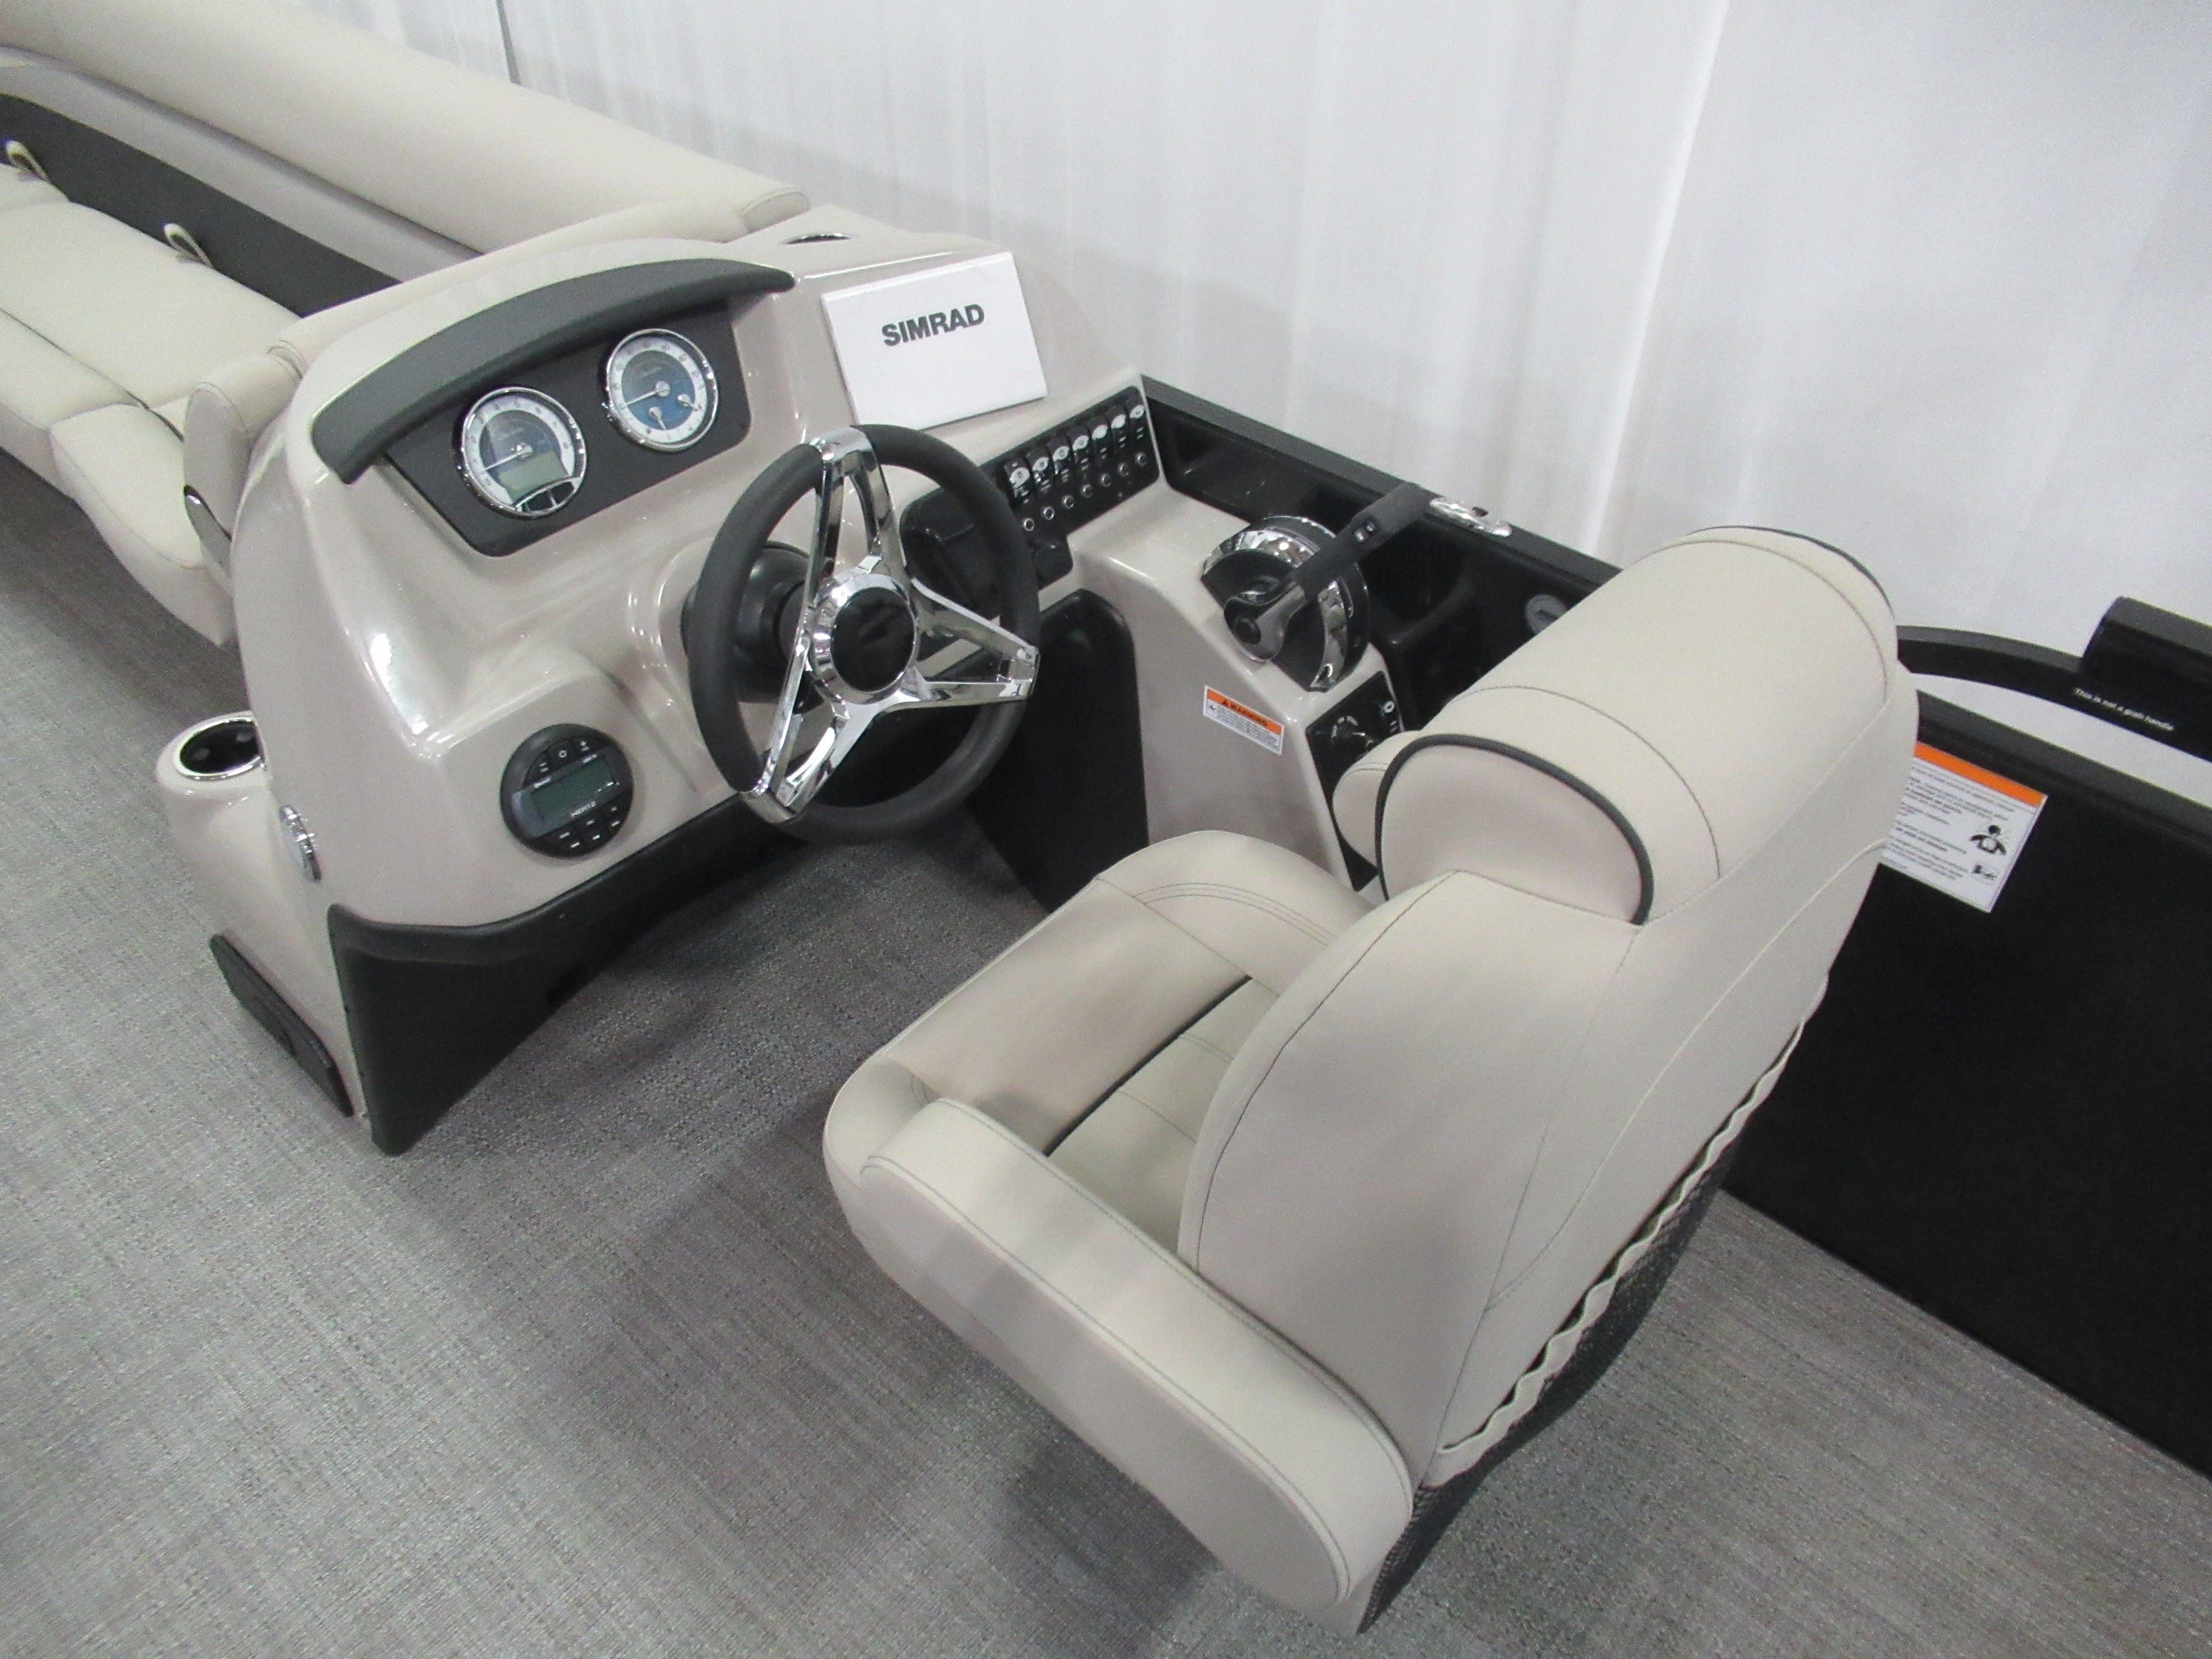 2021 Barletta boat for sale, model of the boat is C24uc & Image # 8 of 11